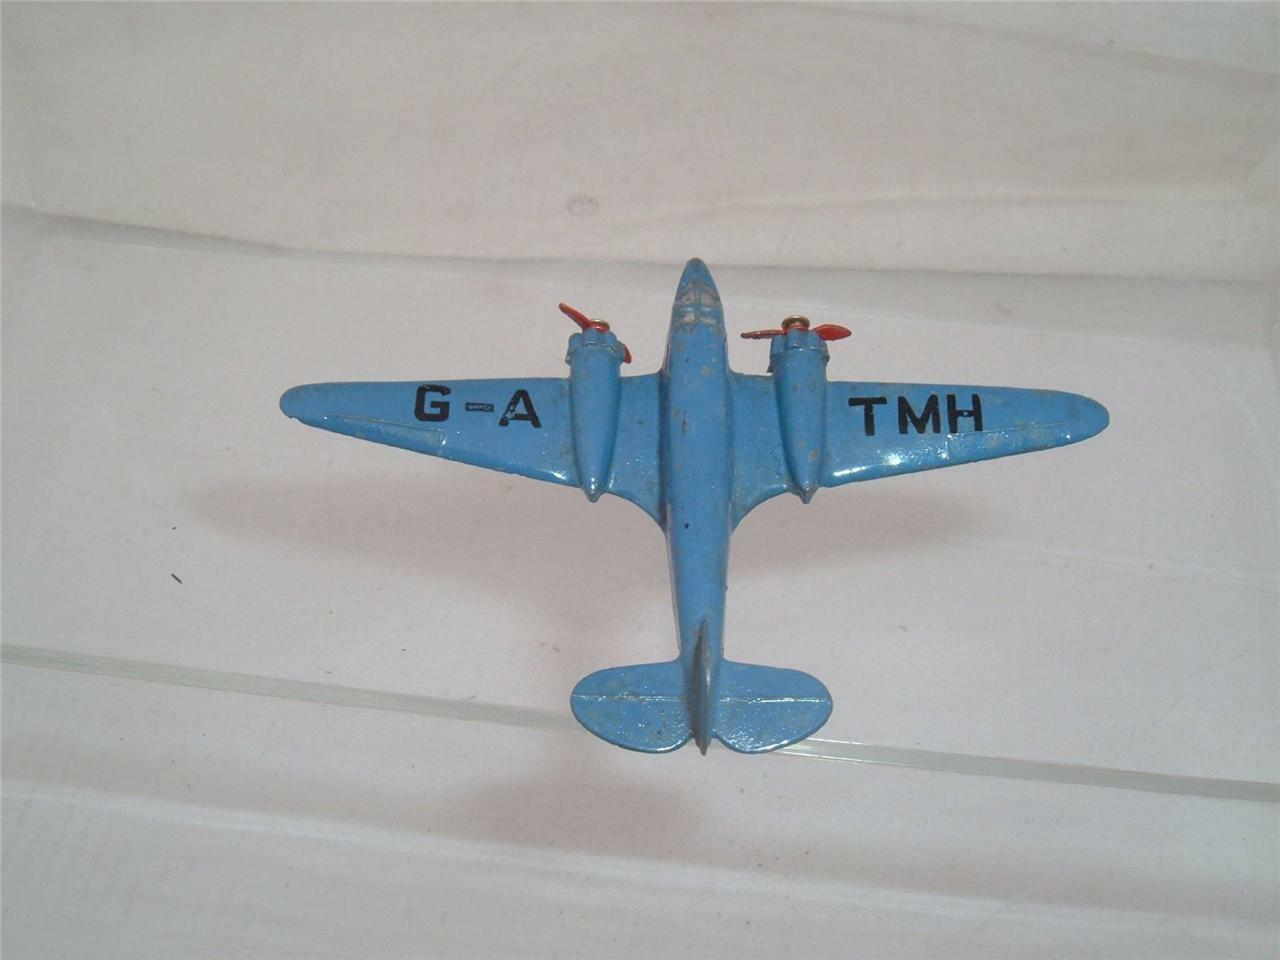 DINKY TOY 62M G-A TMH LIGHT TRANSPORT AEROPLANE ORIGINAL USED CONDITION SEE PICS